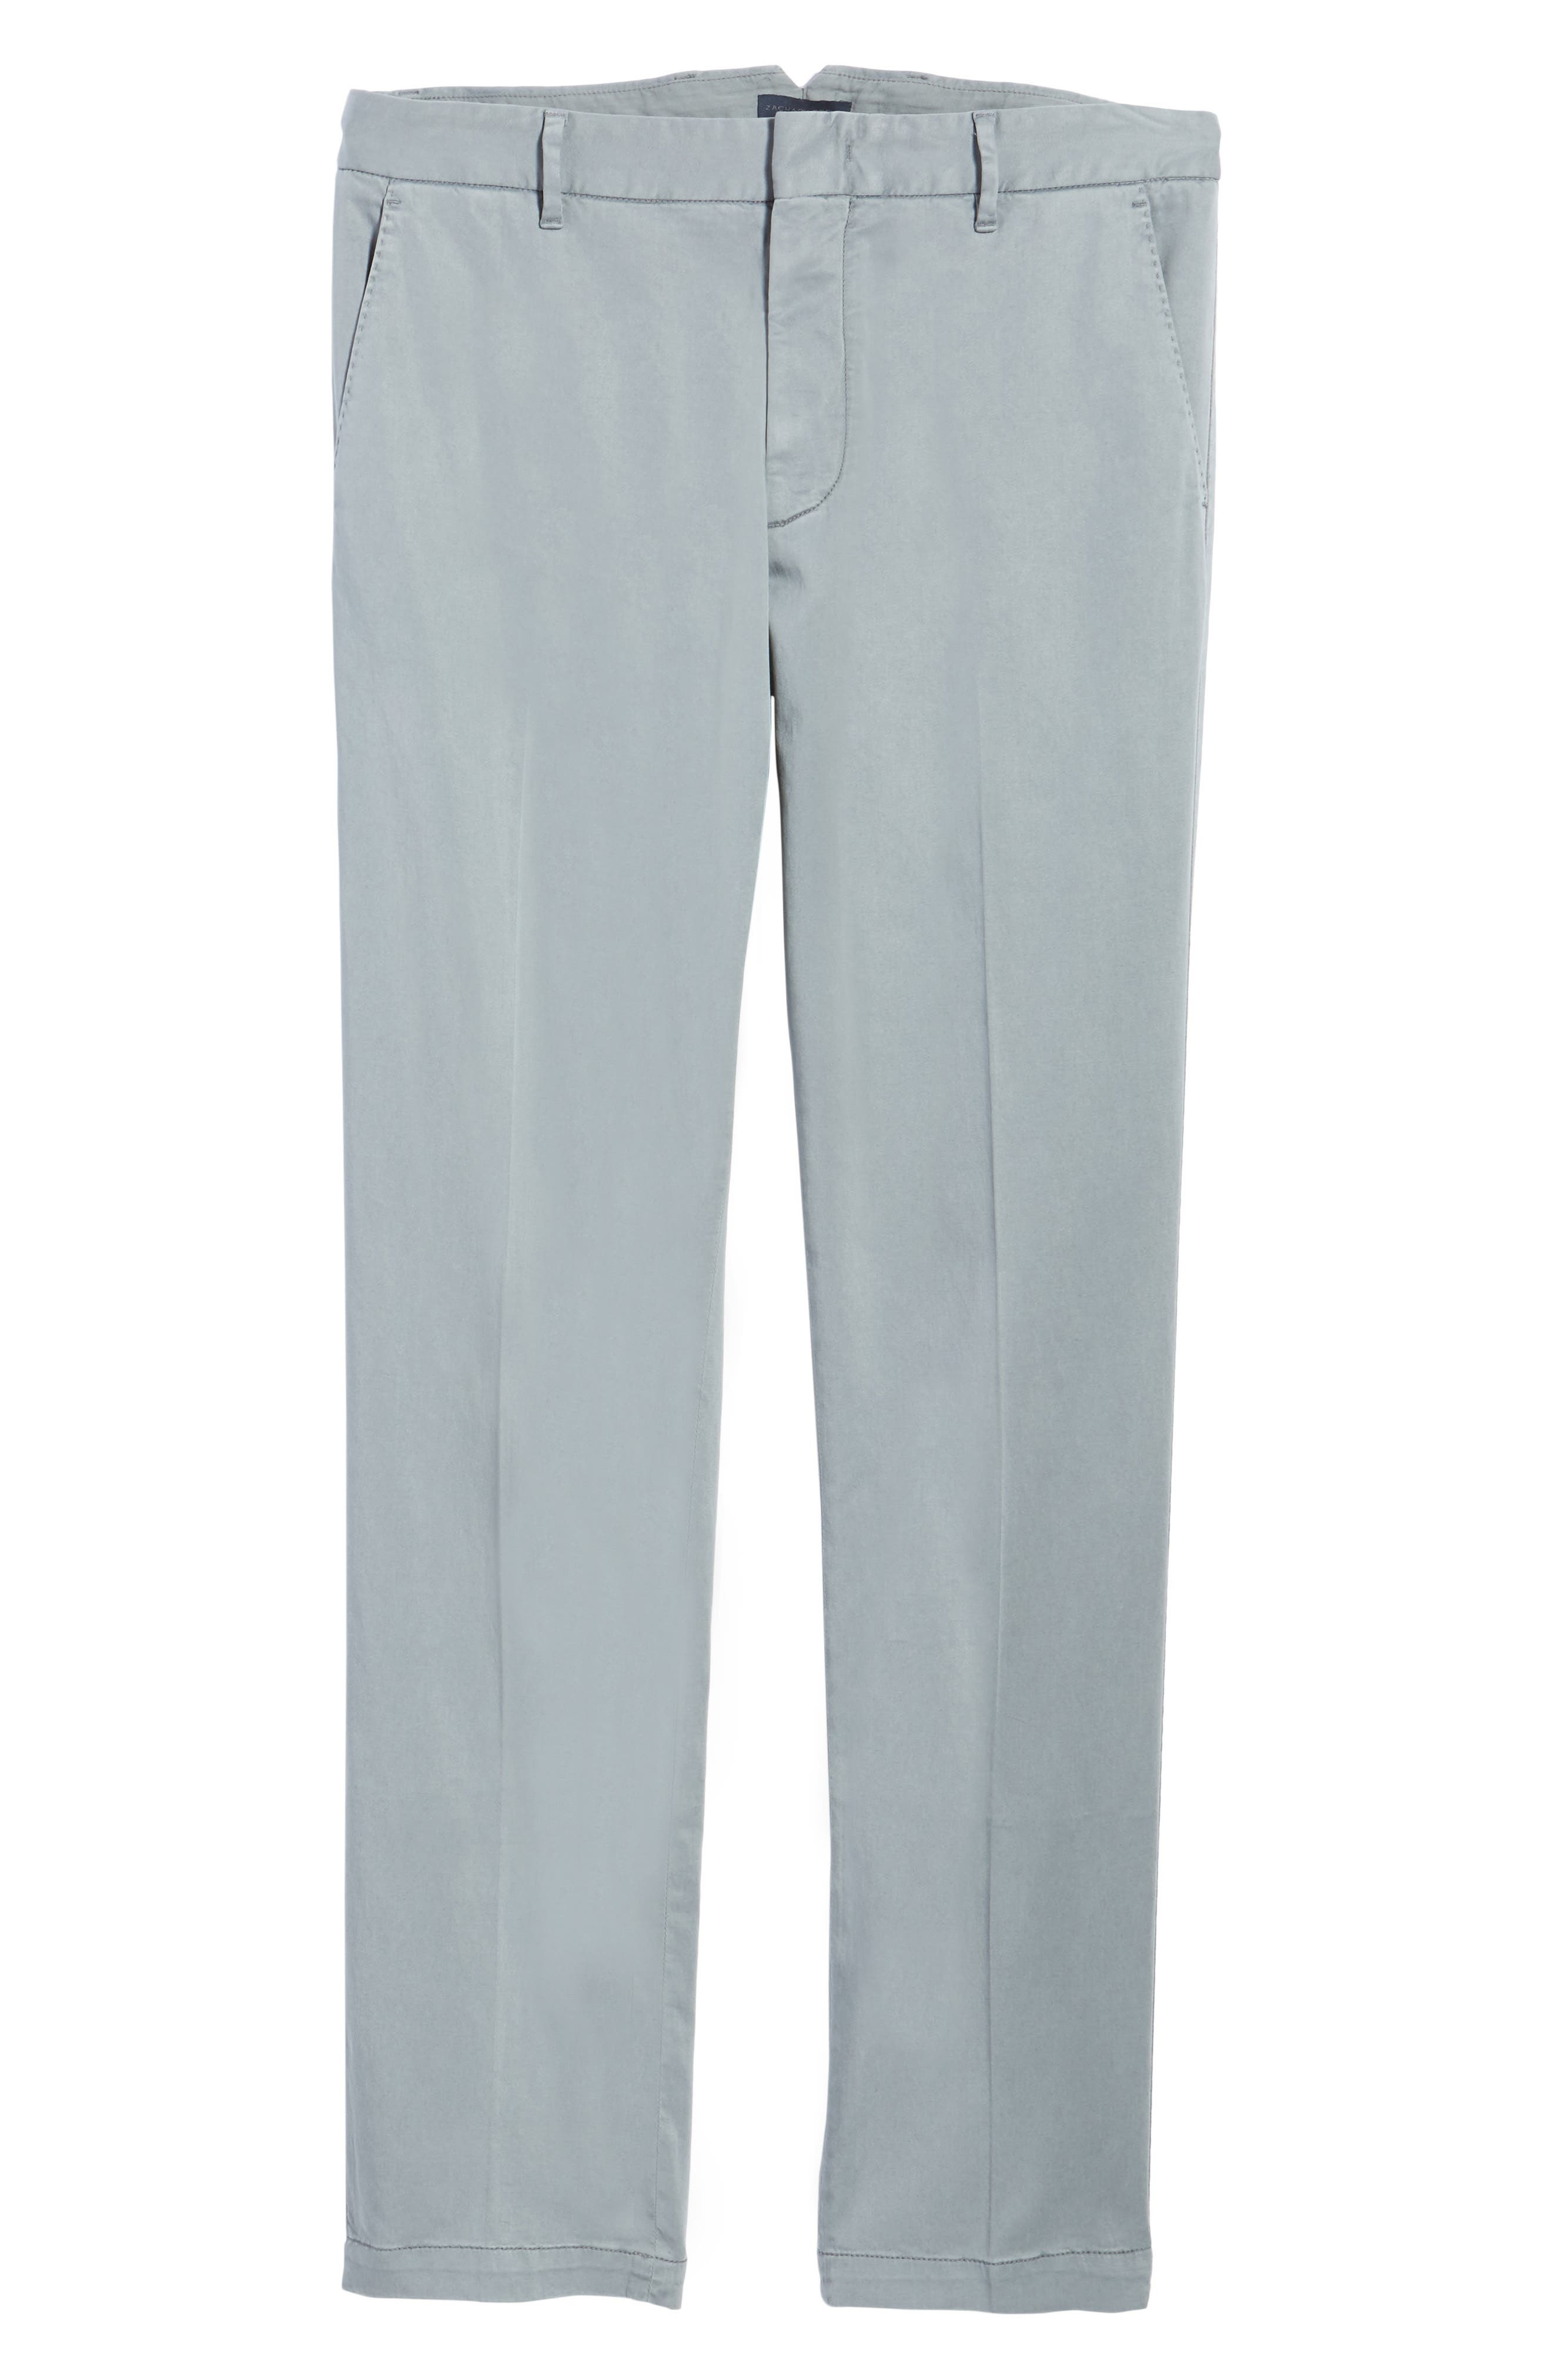 ZACHARY PRELL, Aster Straight Fit Pants, Alternate thumbnail 7, color, GREY